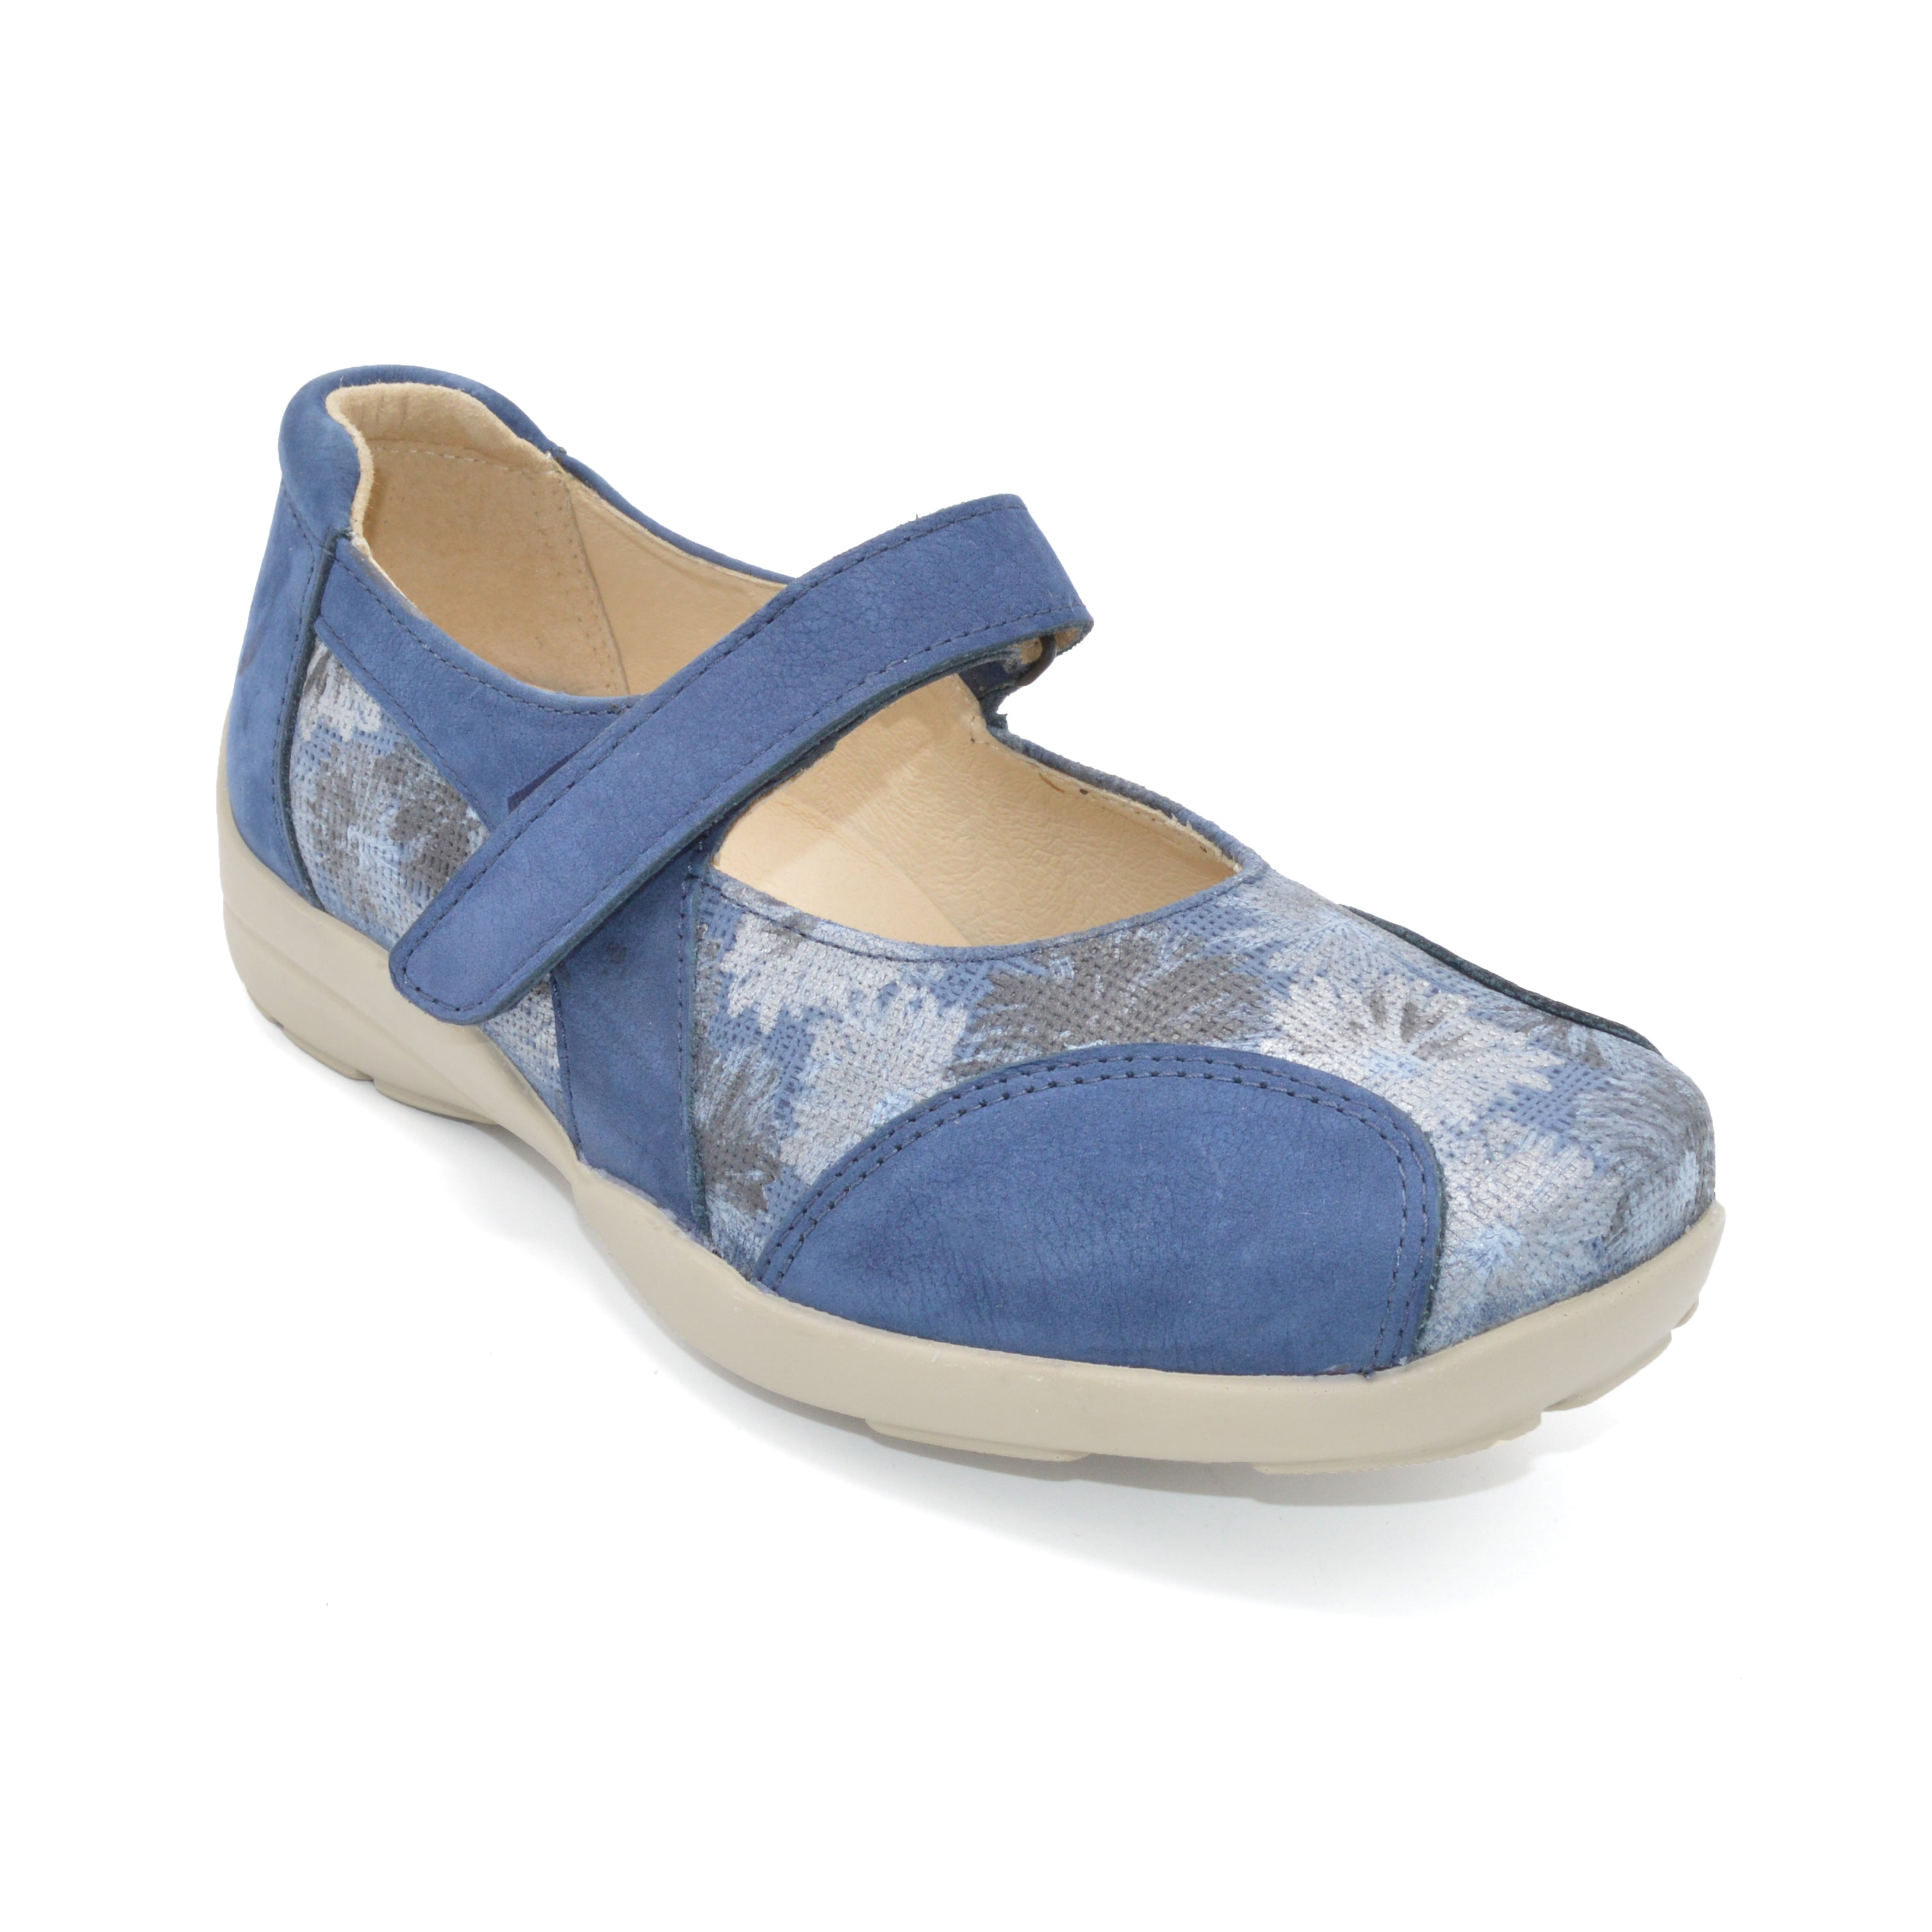 Very Wide Navy Ladies Shoes for Bunions